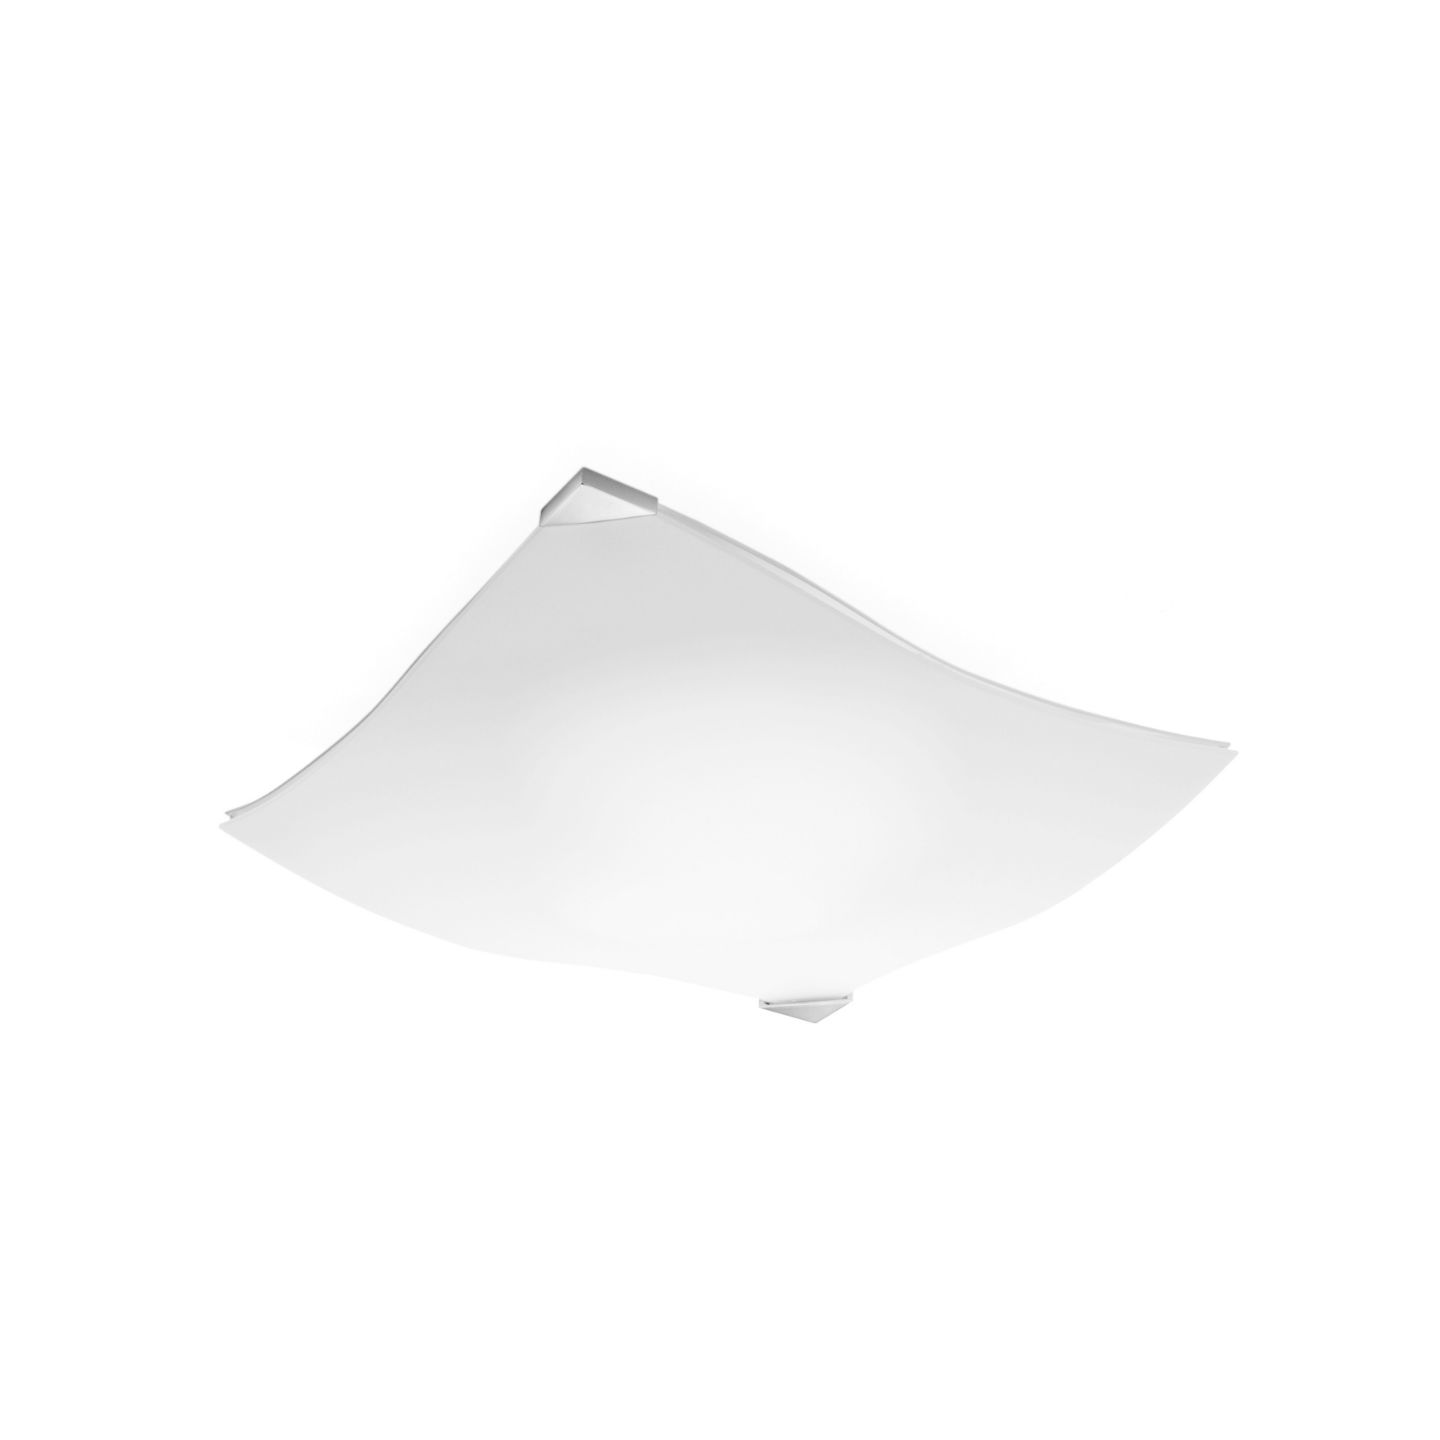 Bent T 2752 ceiling lamp R7s 1x200w max Gold Satin 24K